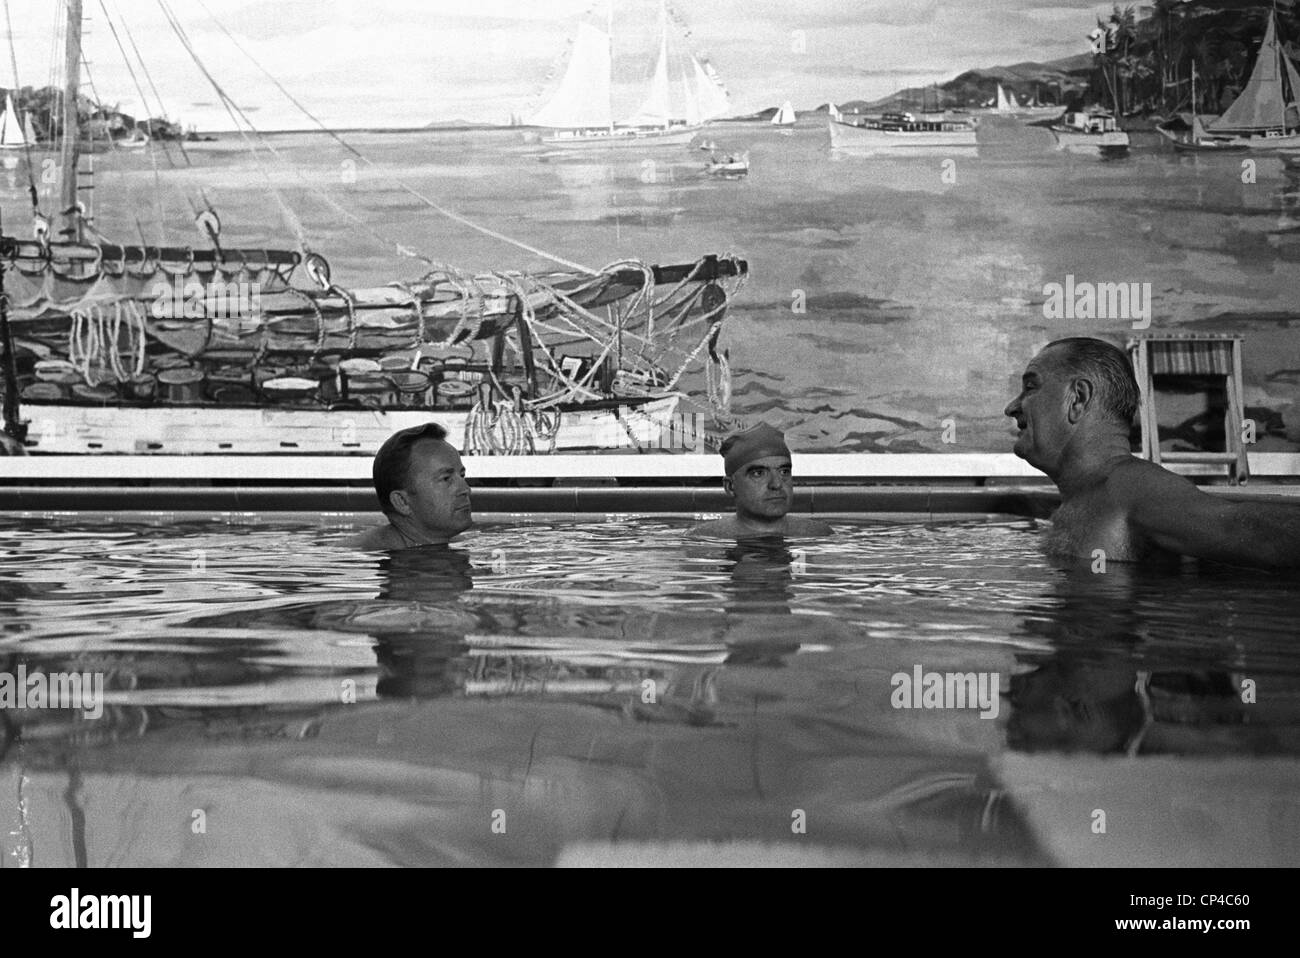 Lbj in the white house swimming pool lloyd hand jack valenti stock photo royalty free image for White house swimming pool history